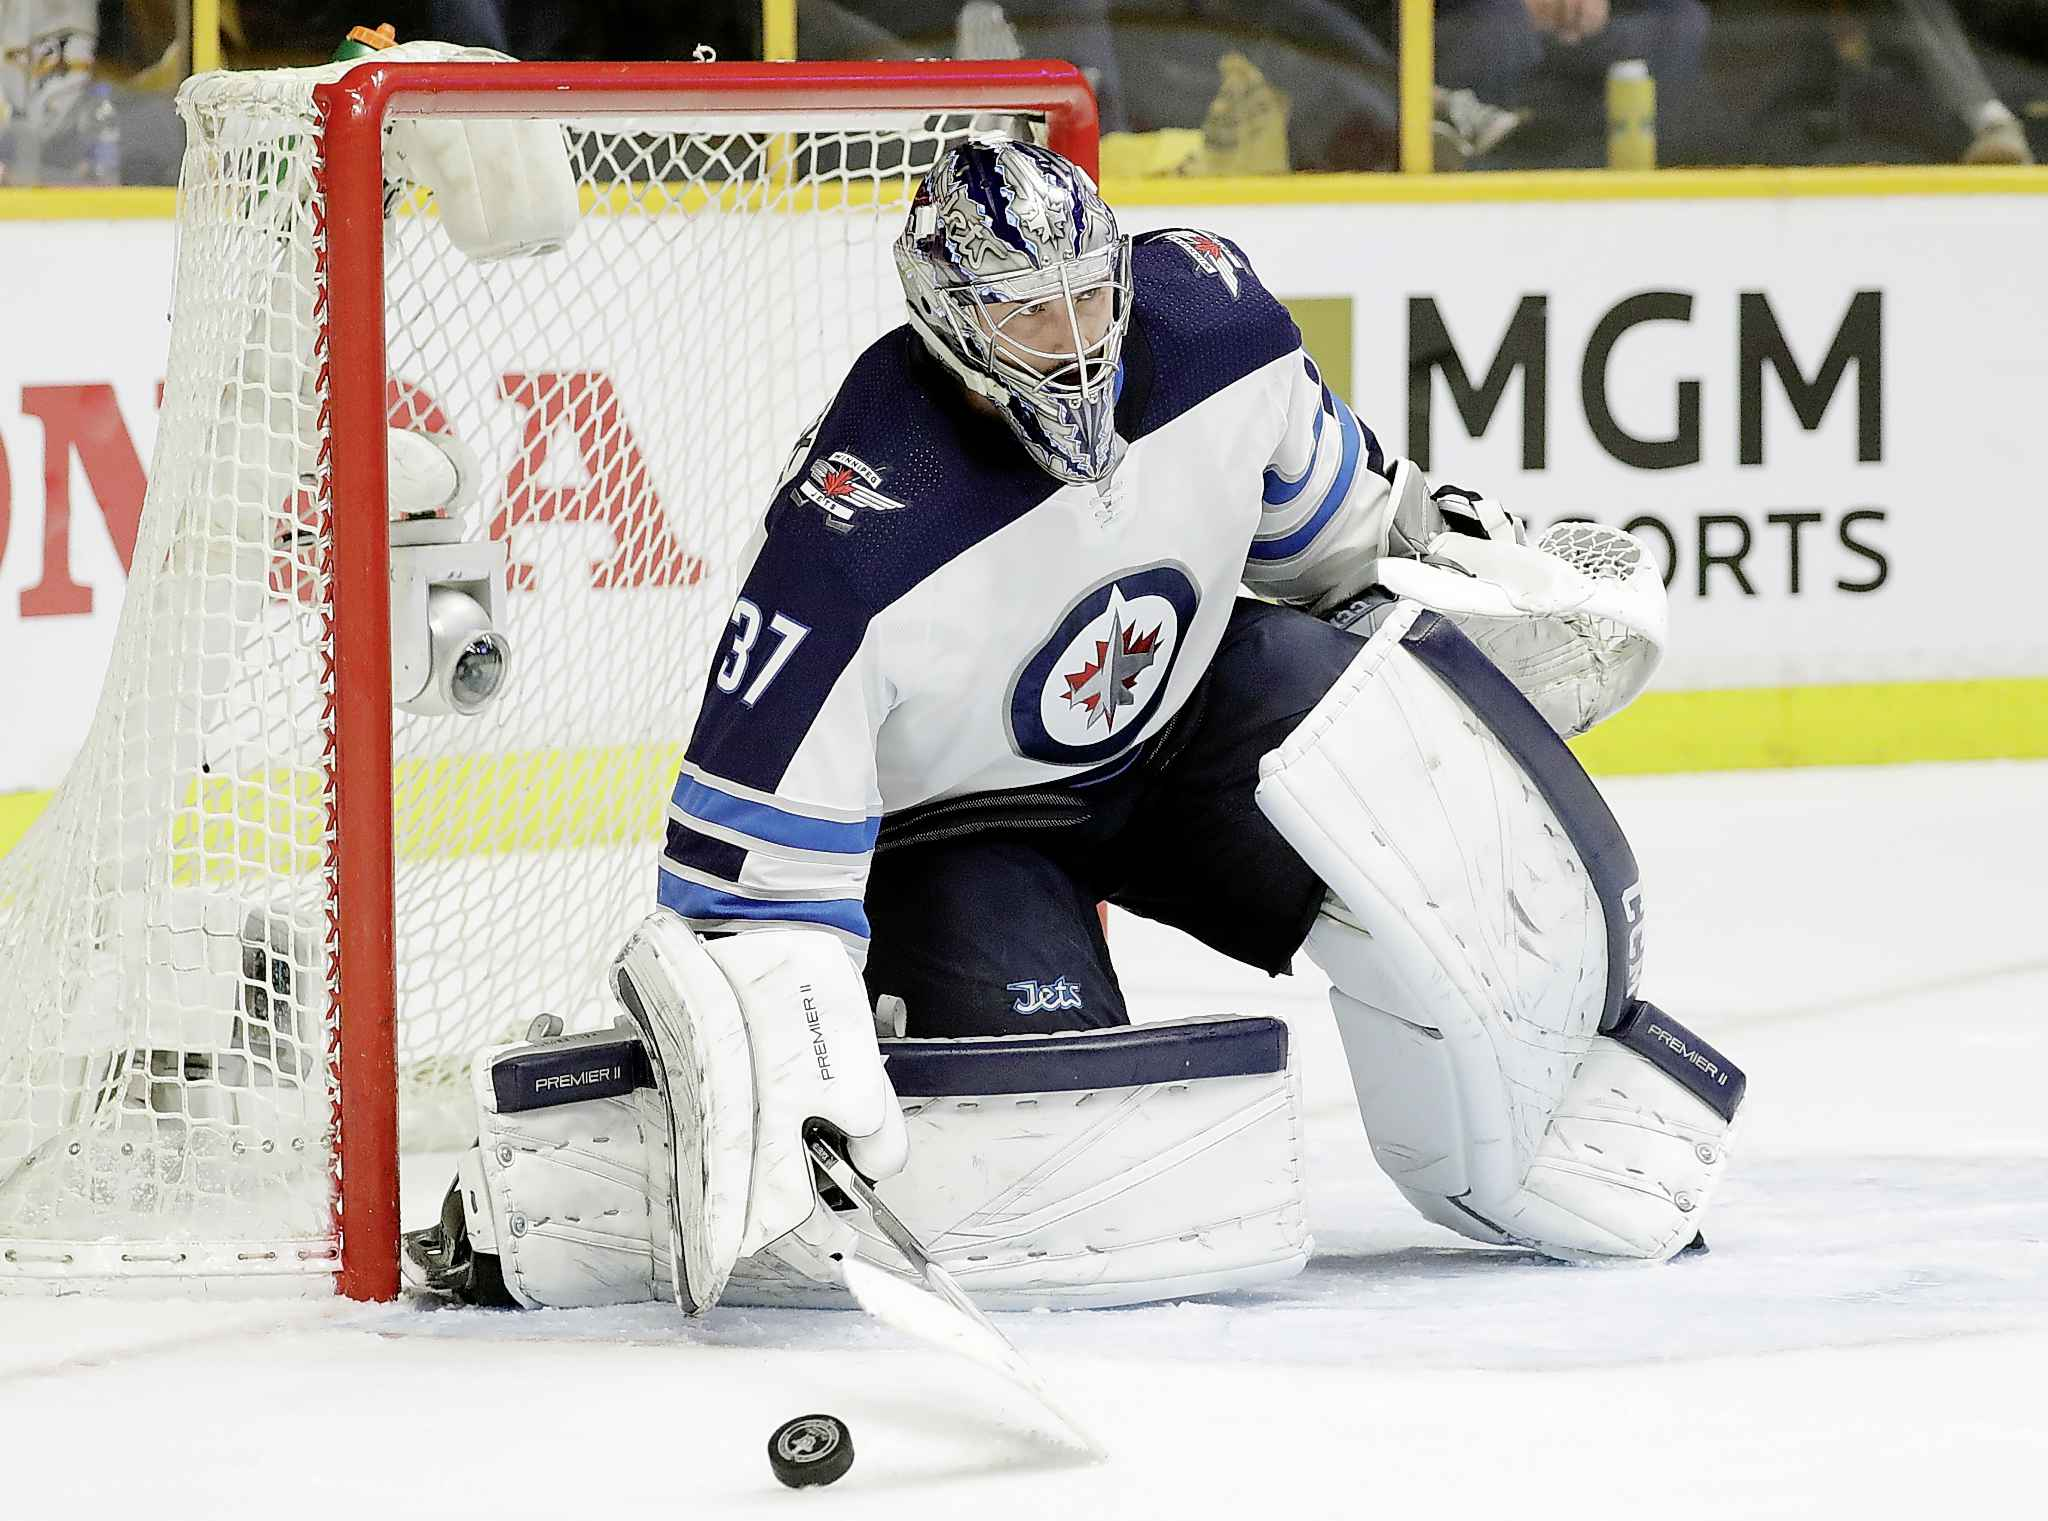 Jets goalie Connor Hellebuyck is also a restricted free agent that has filed for salary arbitration.